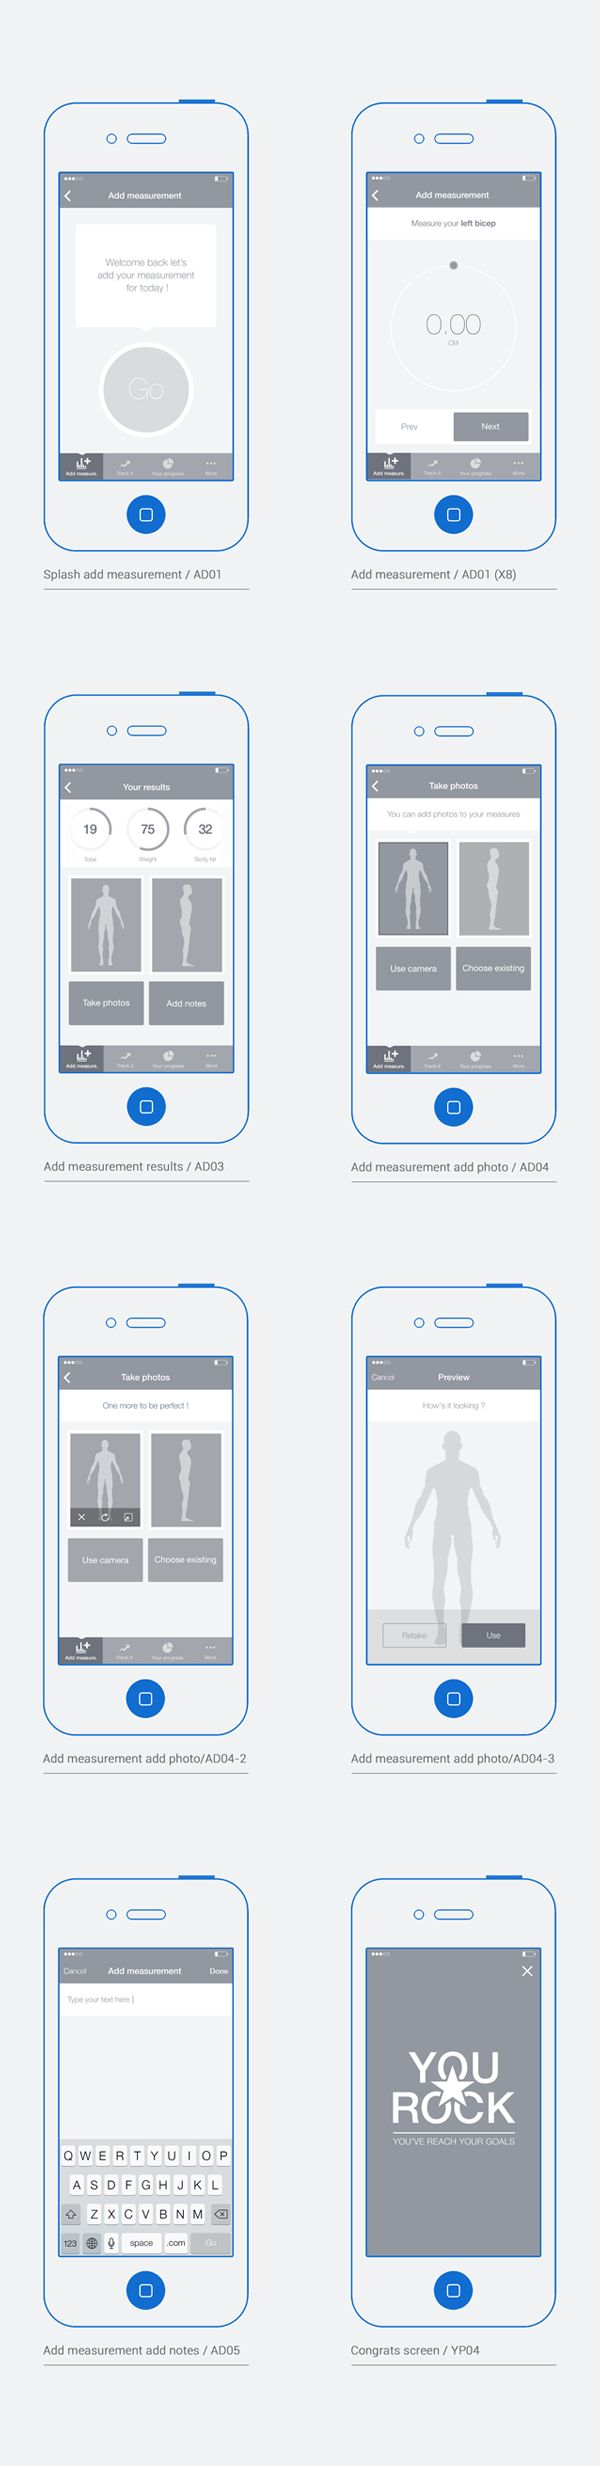 Bodytrack.it - An iOs app - Branding, UX and UI by Grégoire Vella, via Behance